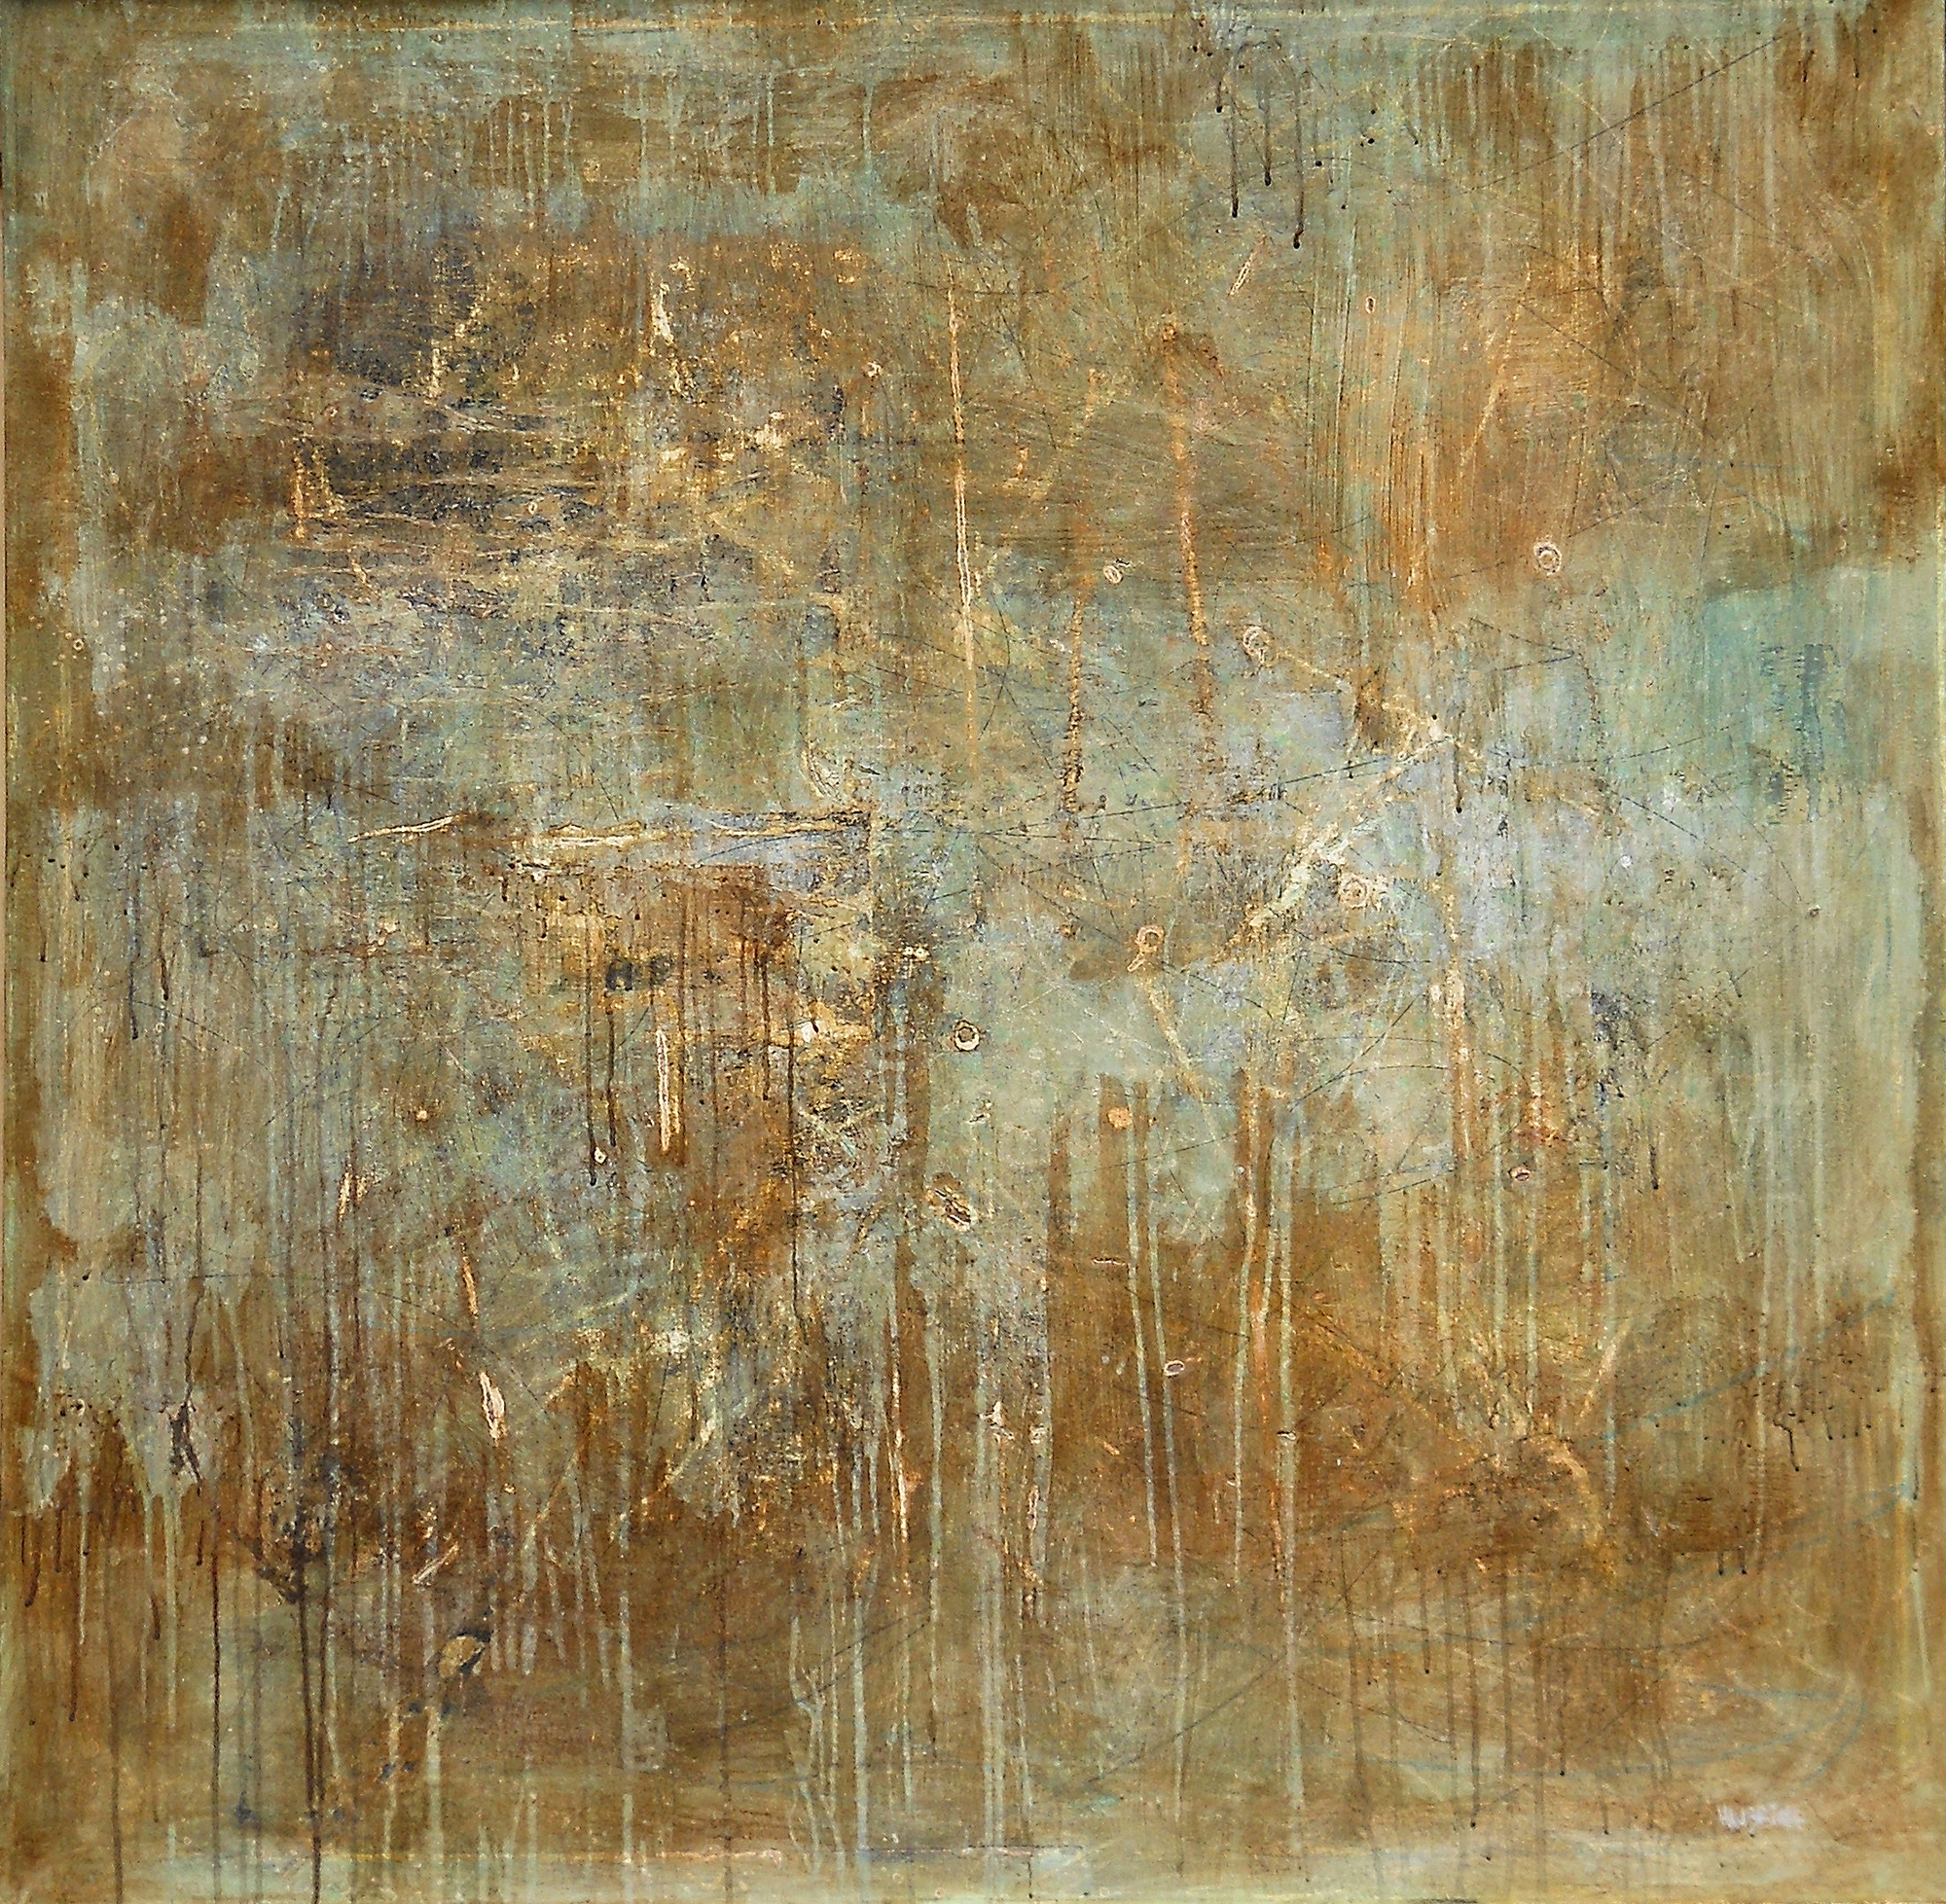 The In Between, 2005, mixed media on canvas, 48 x 48 in, $4,500